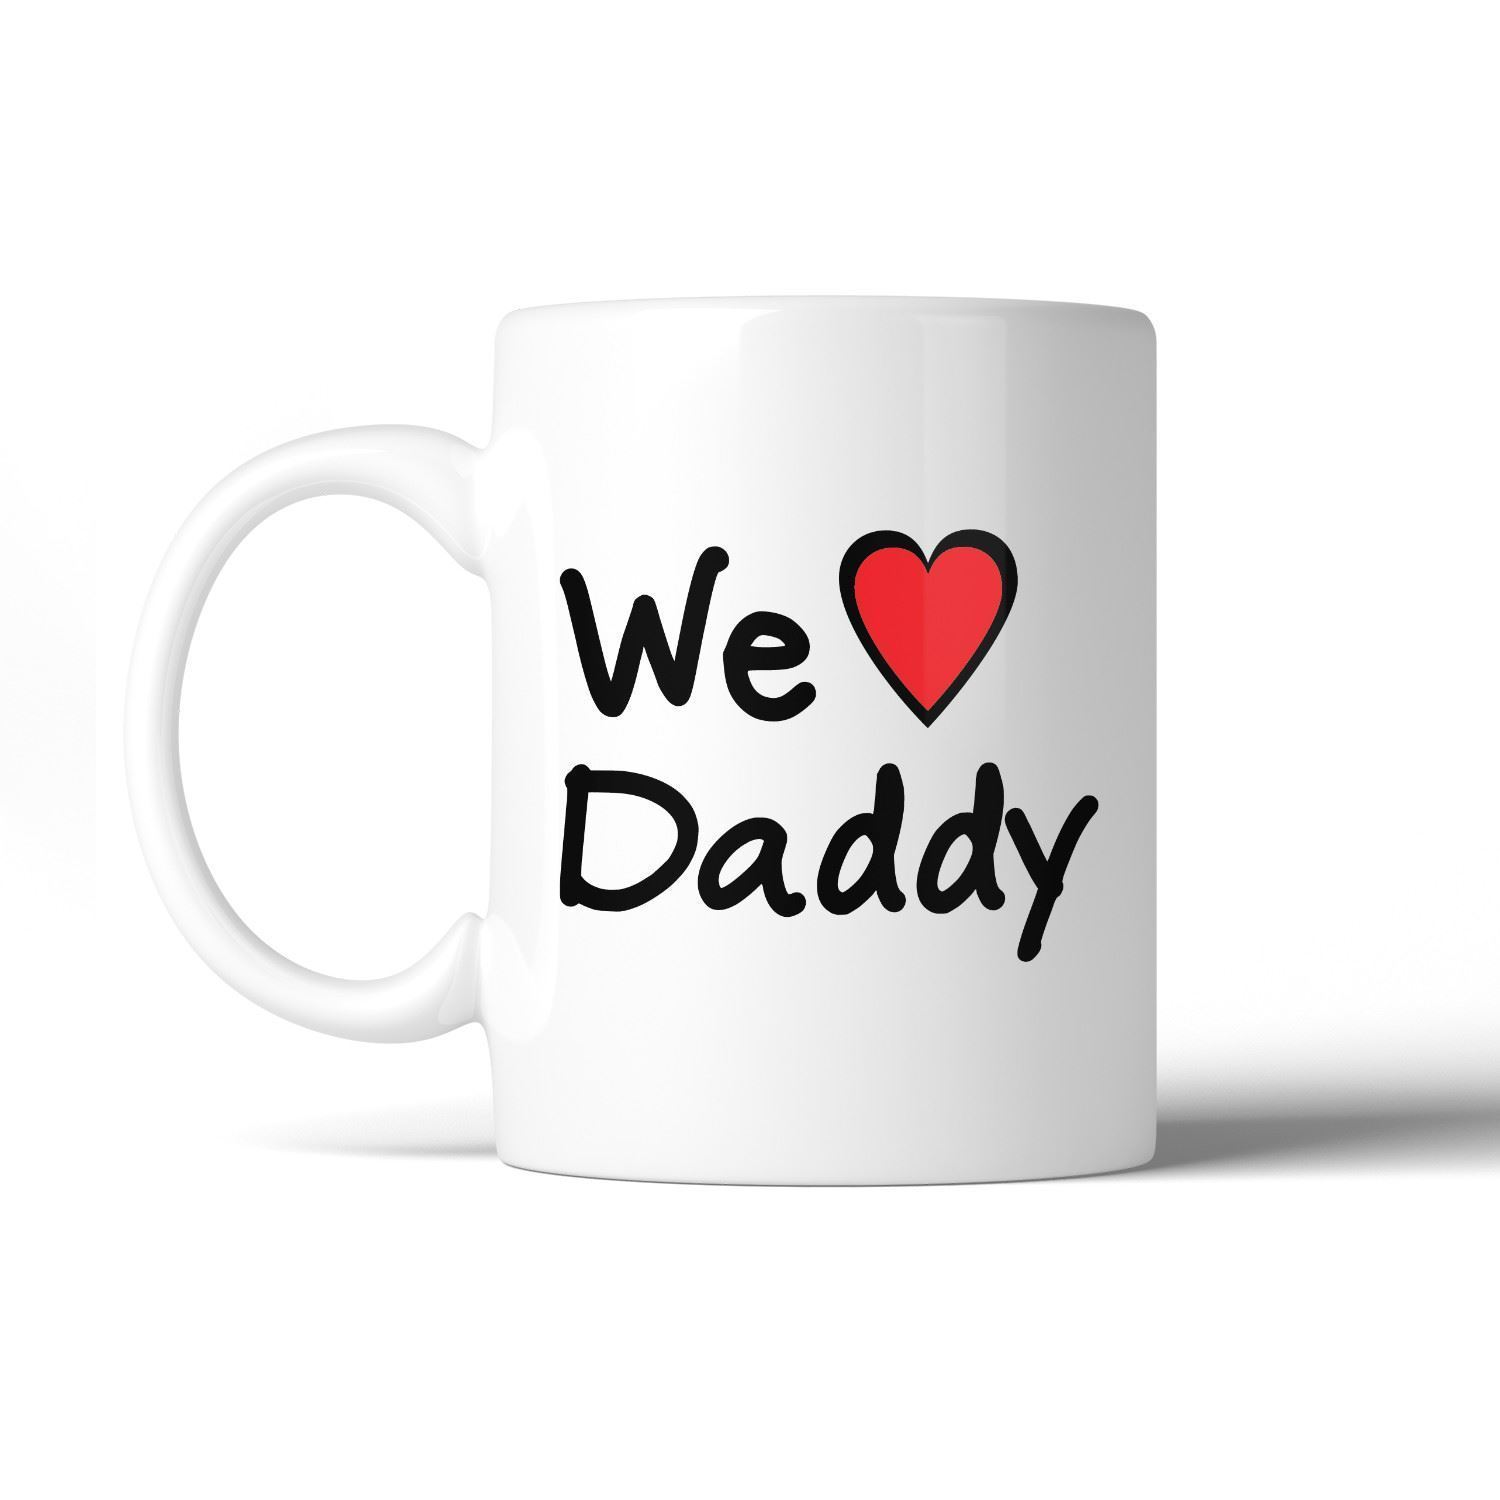 We Love Dad White Cute Design Ceramic Mug Birthday Gifts For Dad